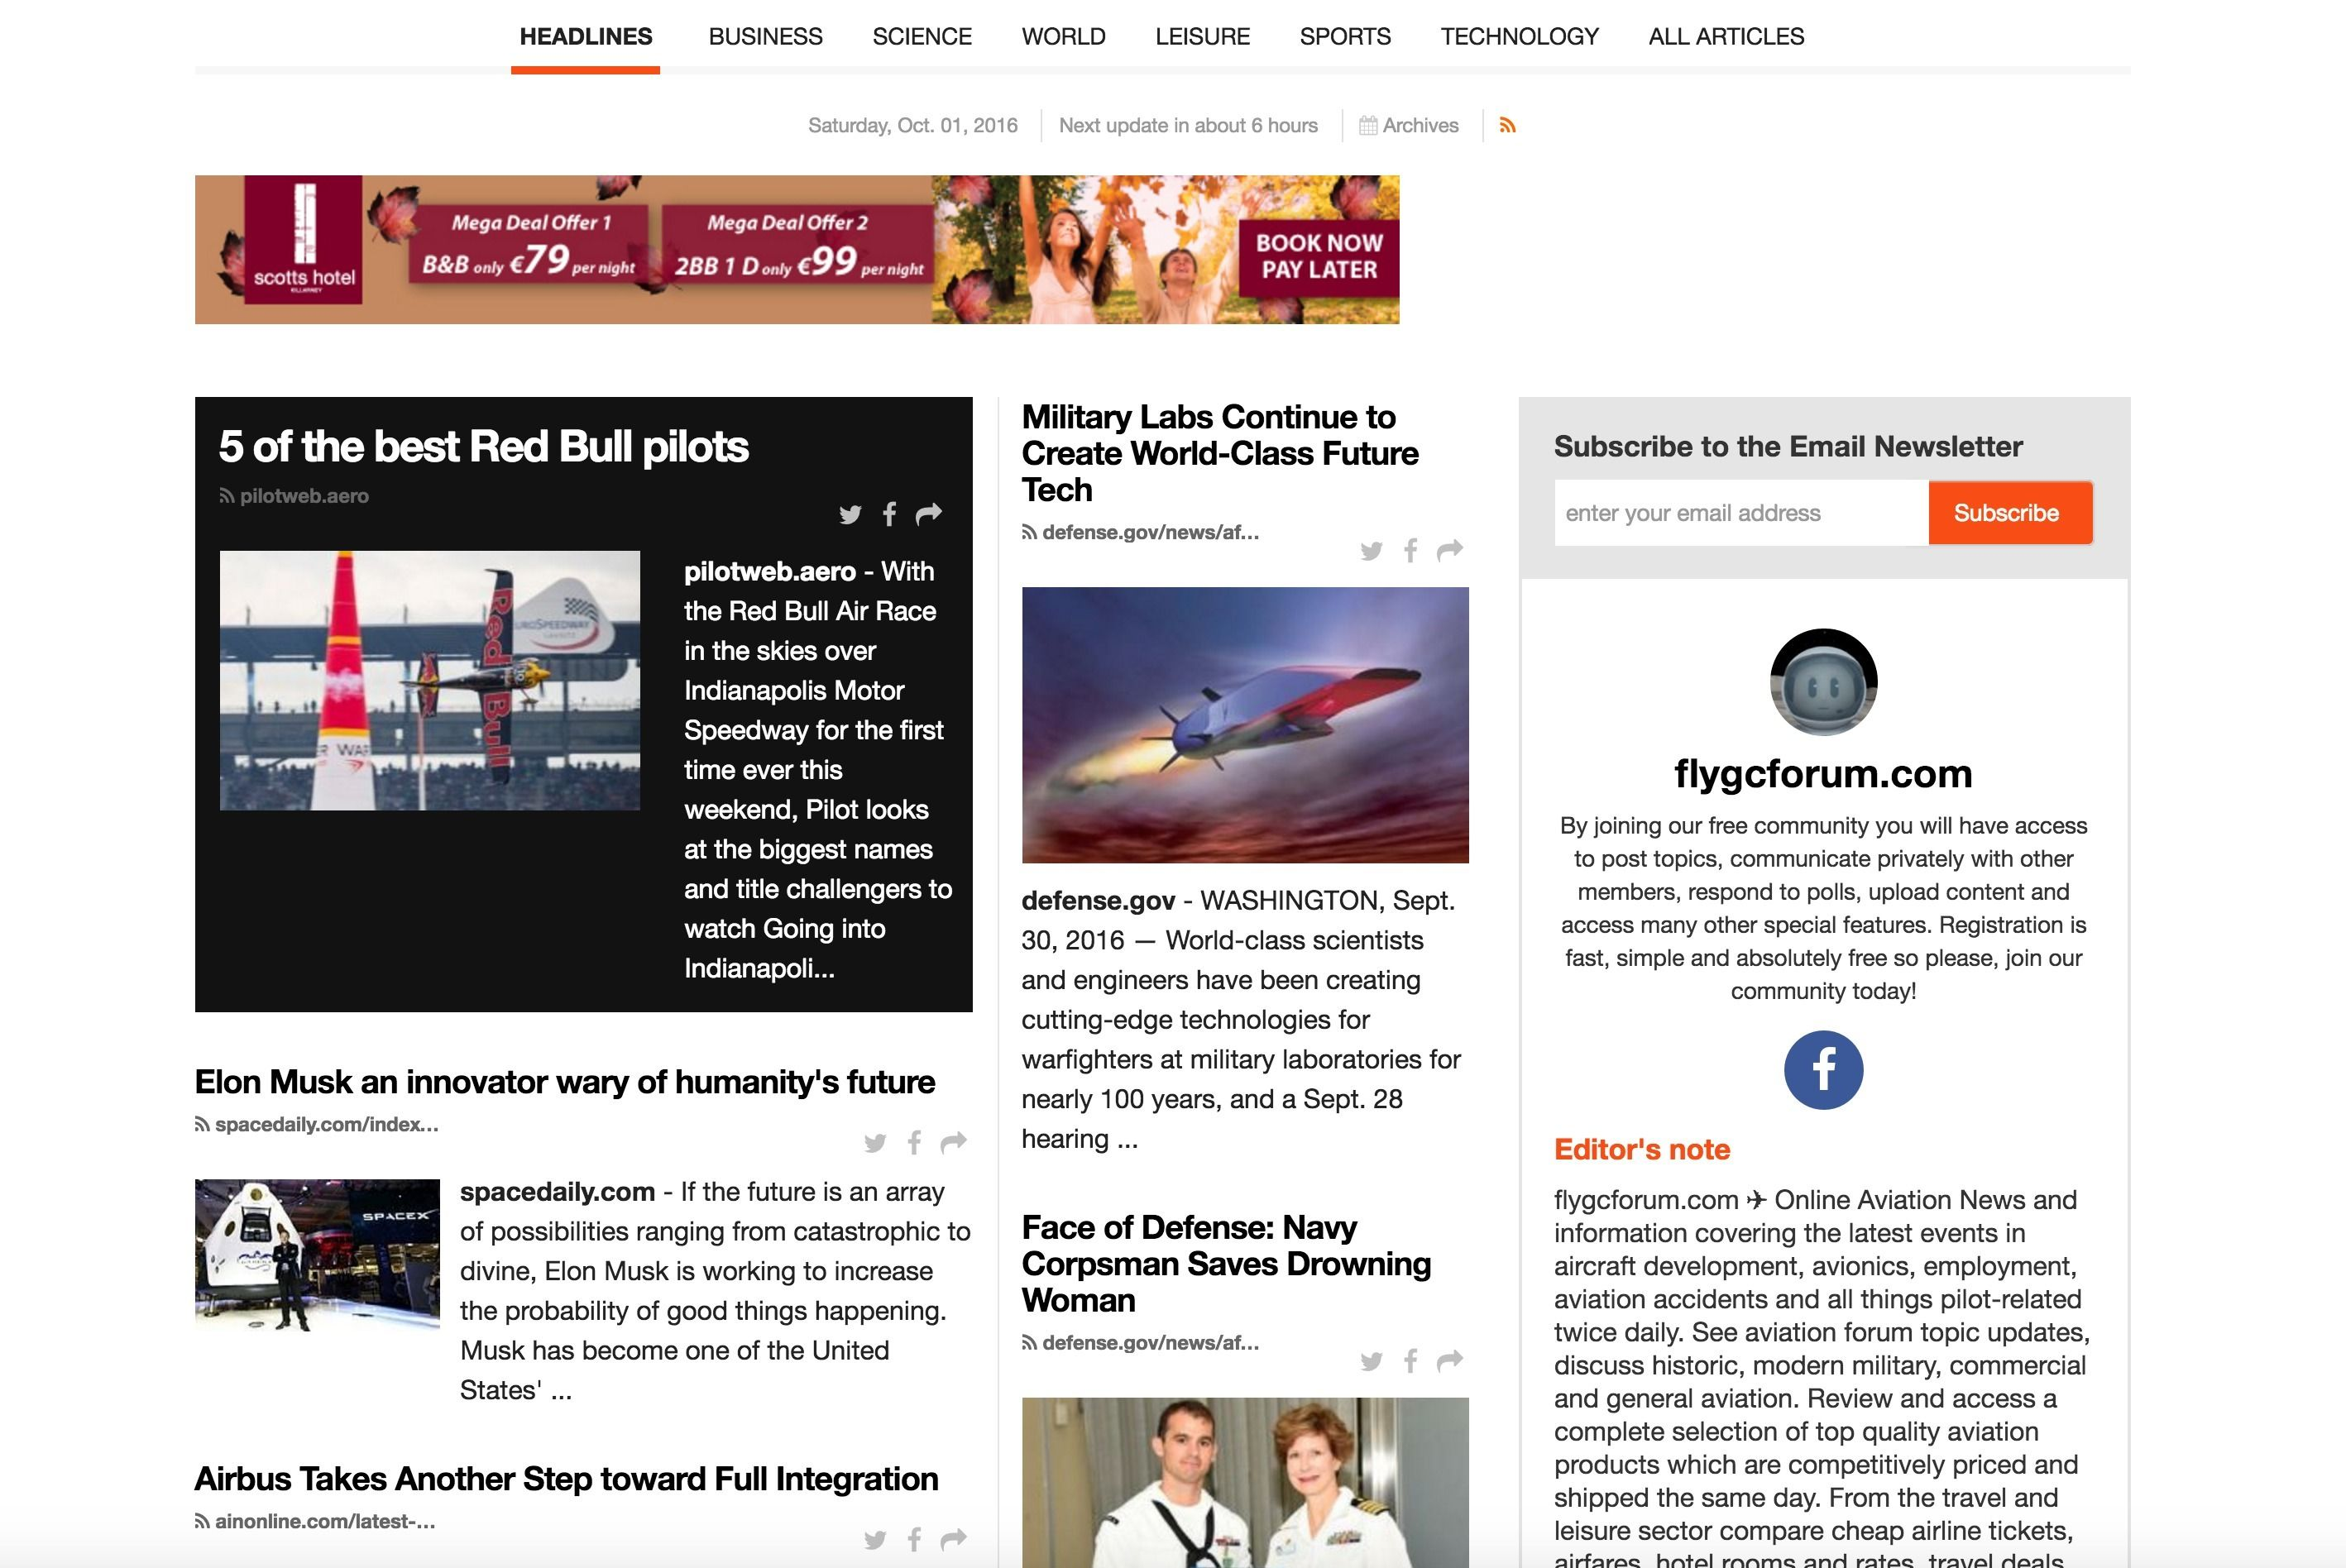 Aviation news and information covering the latest events in